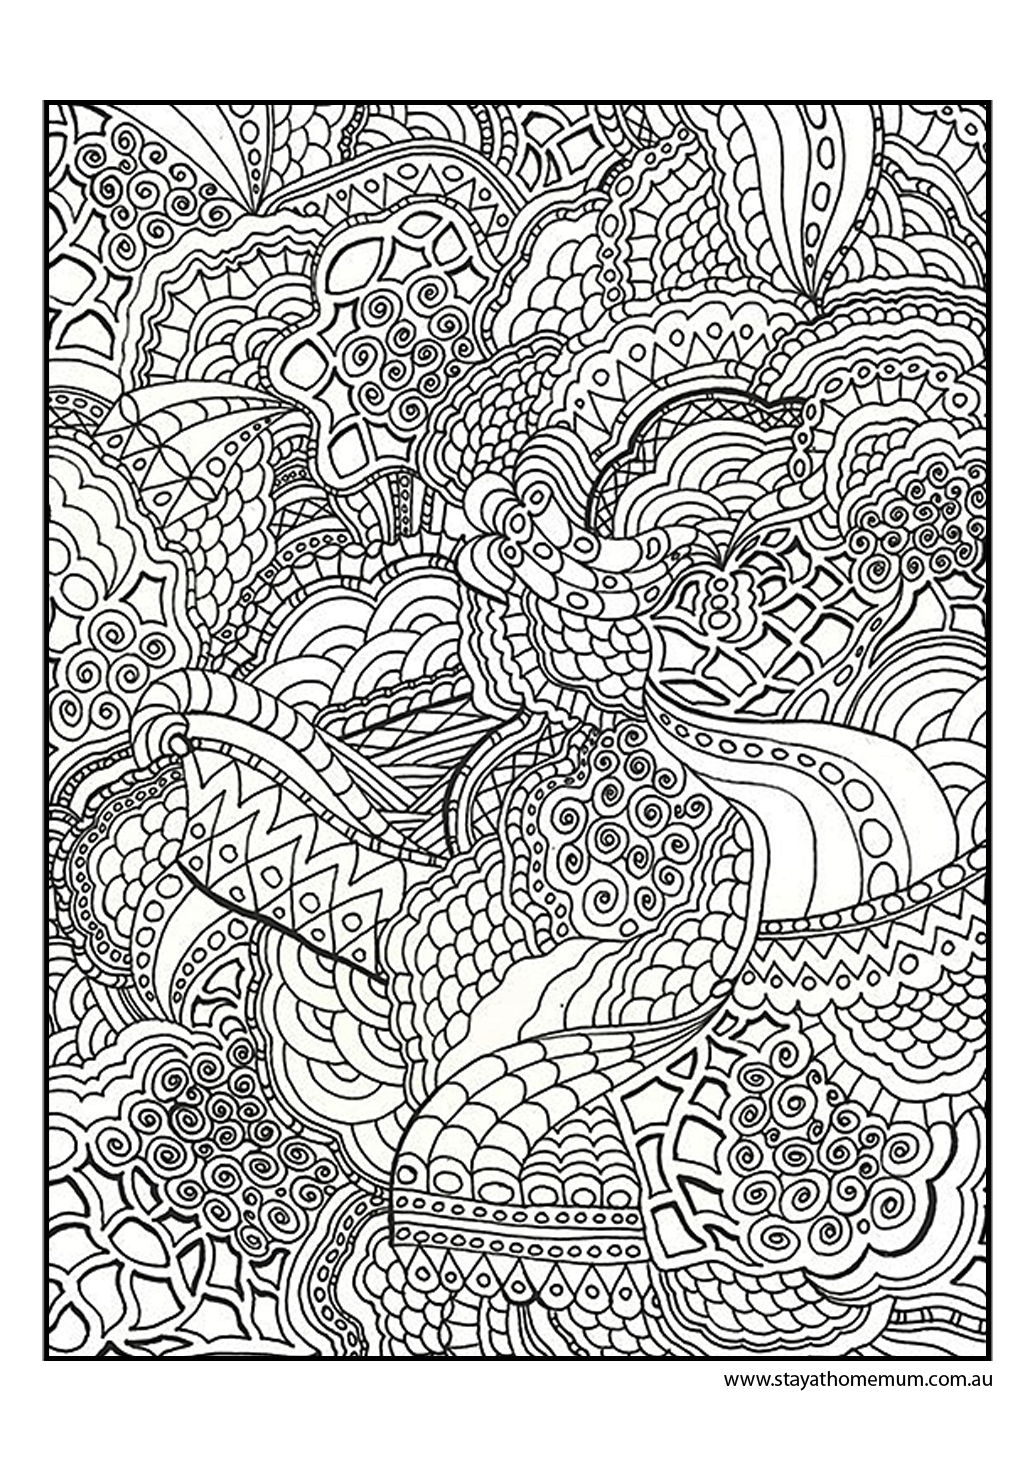 fun coloring pages for adults - printable colouring pages for kids and adults